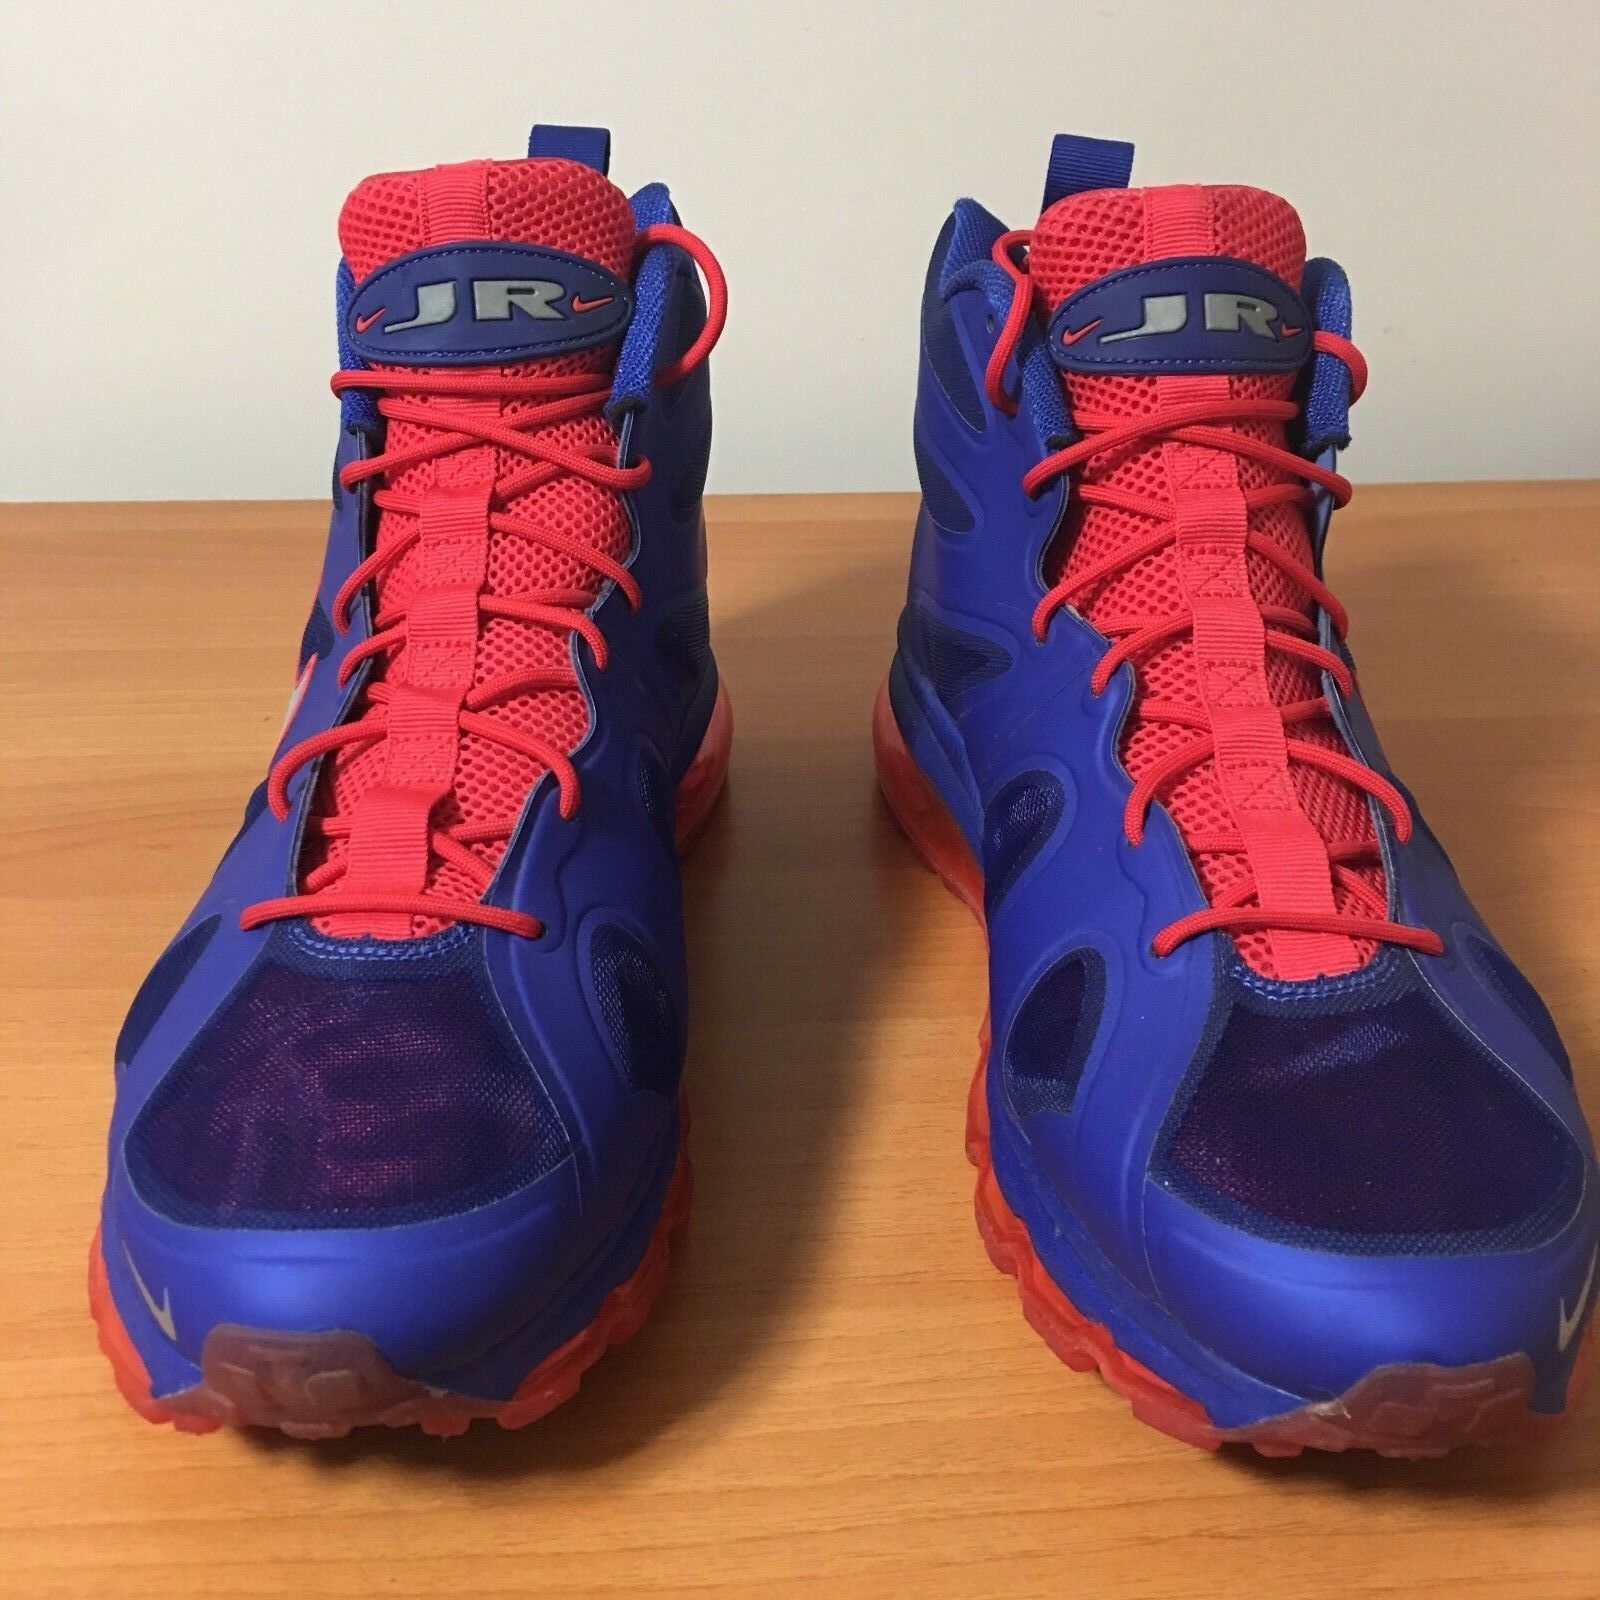 Nike Air Max Griffey Fuse Men's Cross Training Shoe Price reduction Special limited time